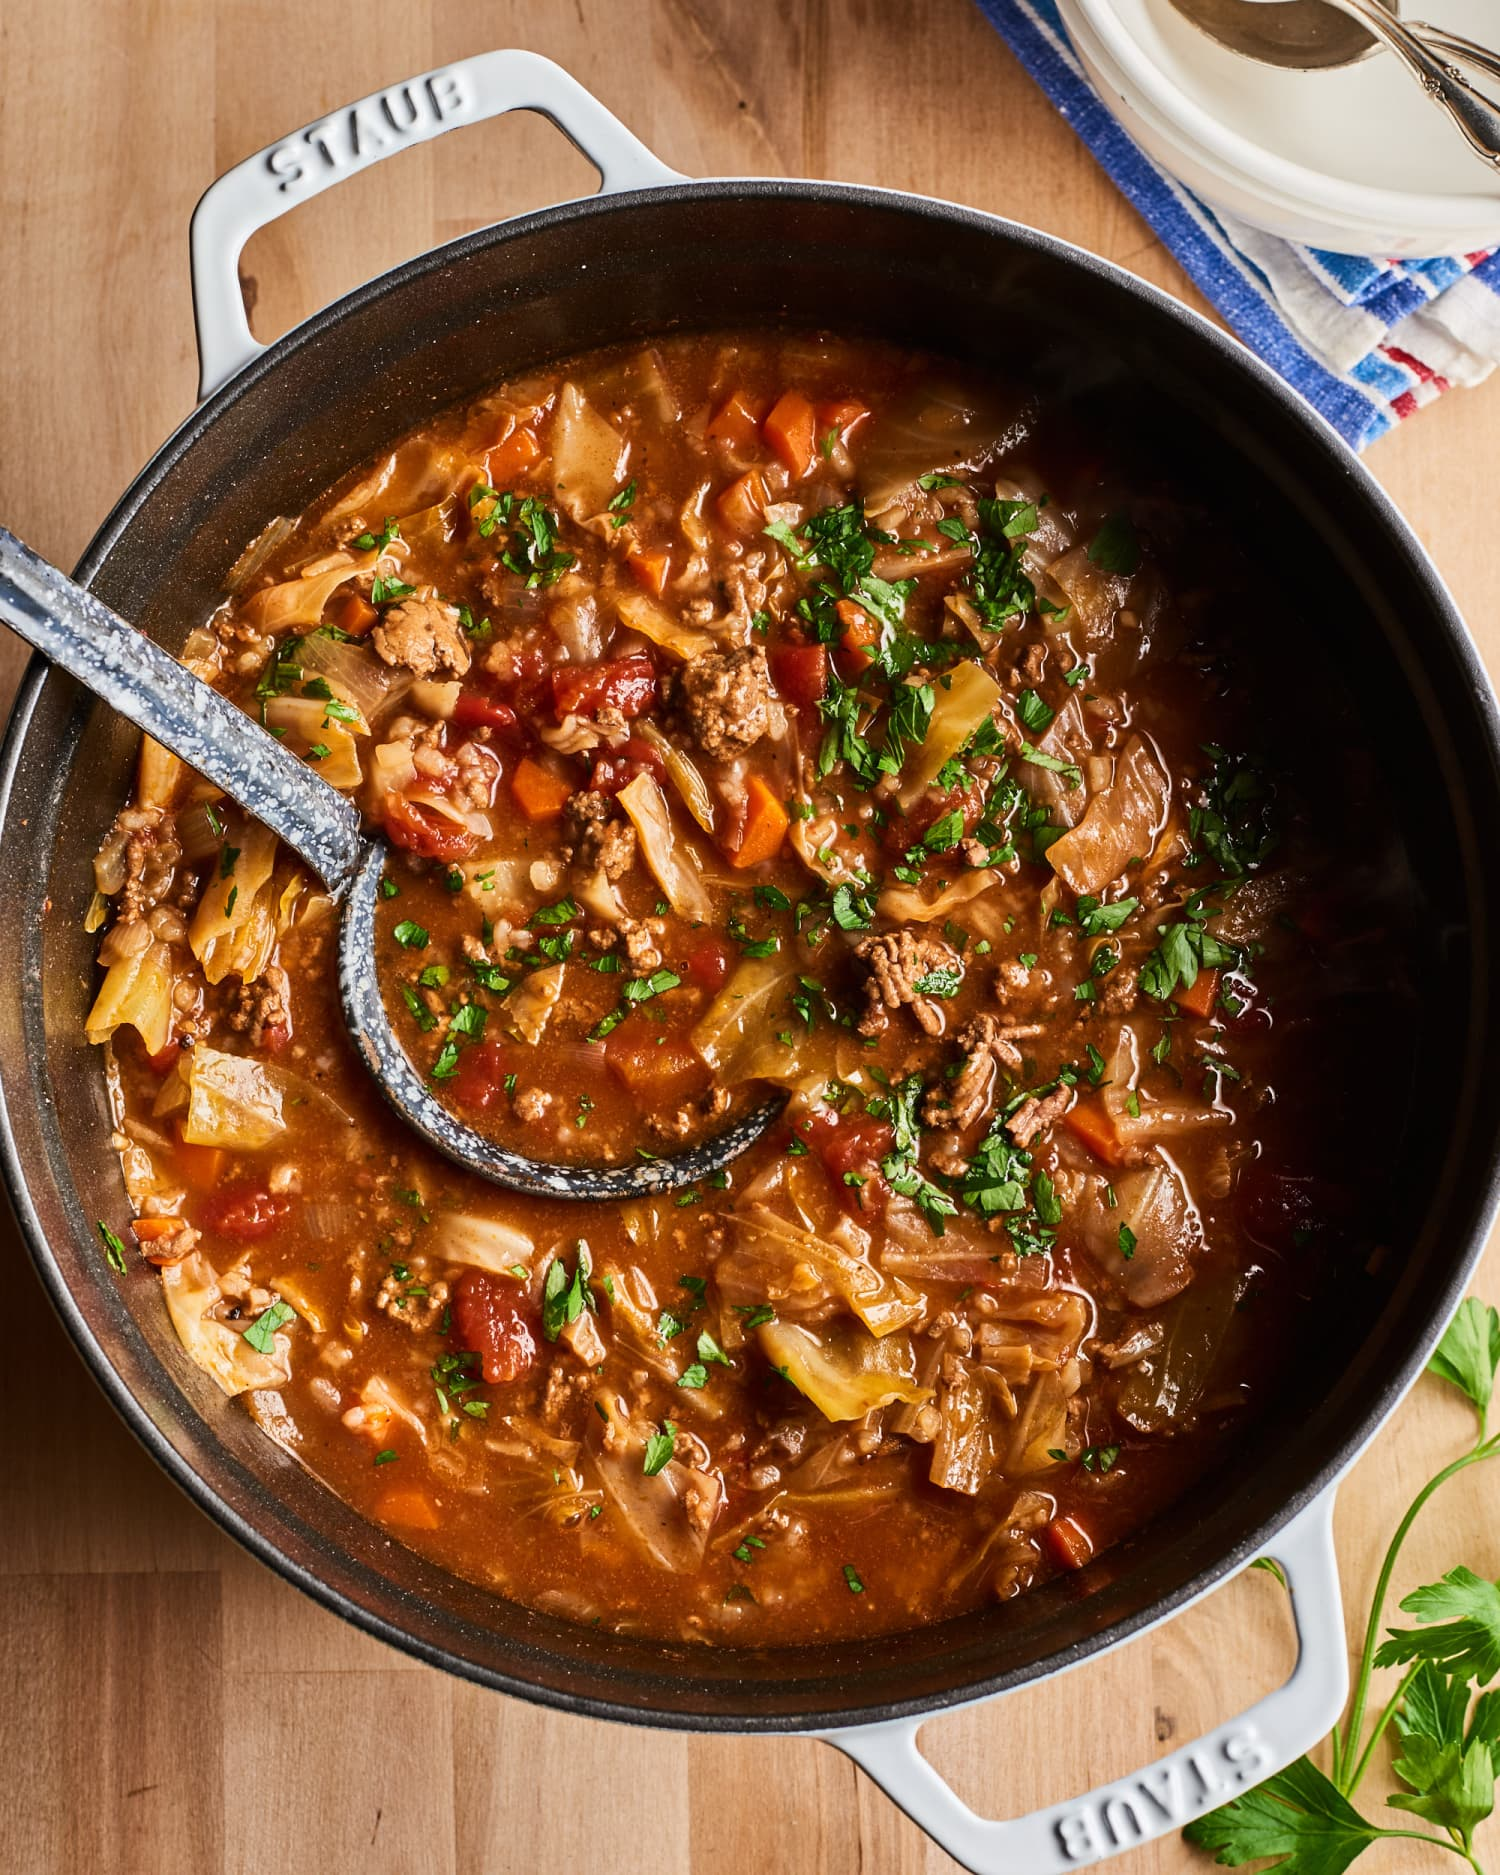 Cabbage Roll Soup Is Everything You Love About the Classic (but So Much Easier)